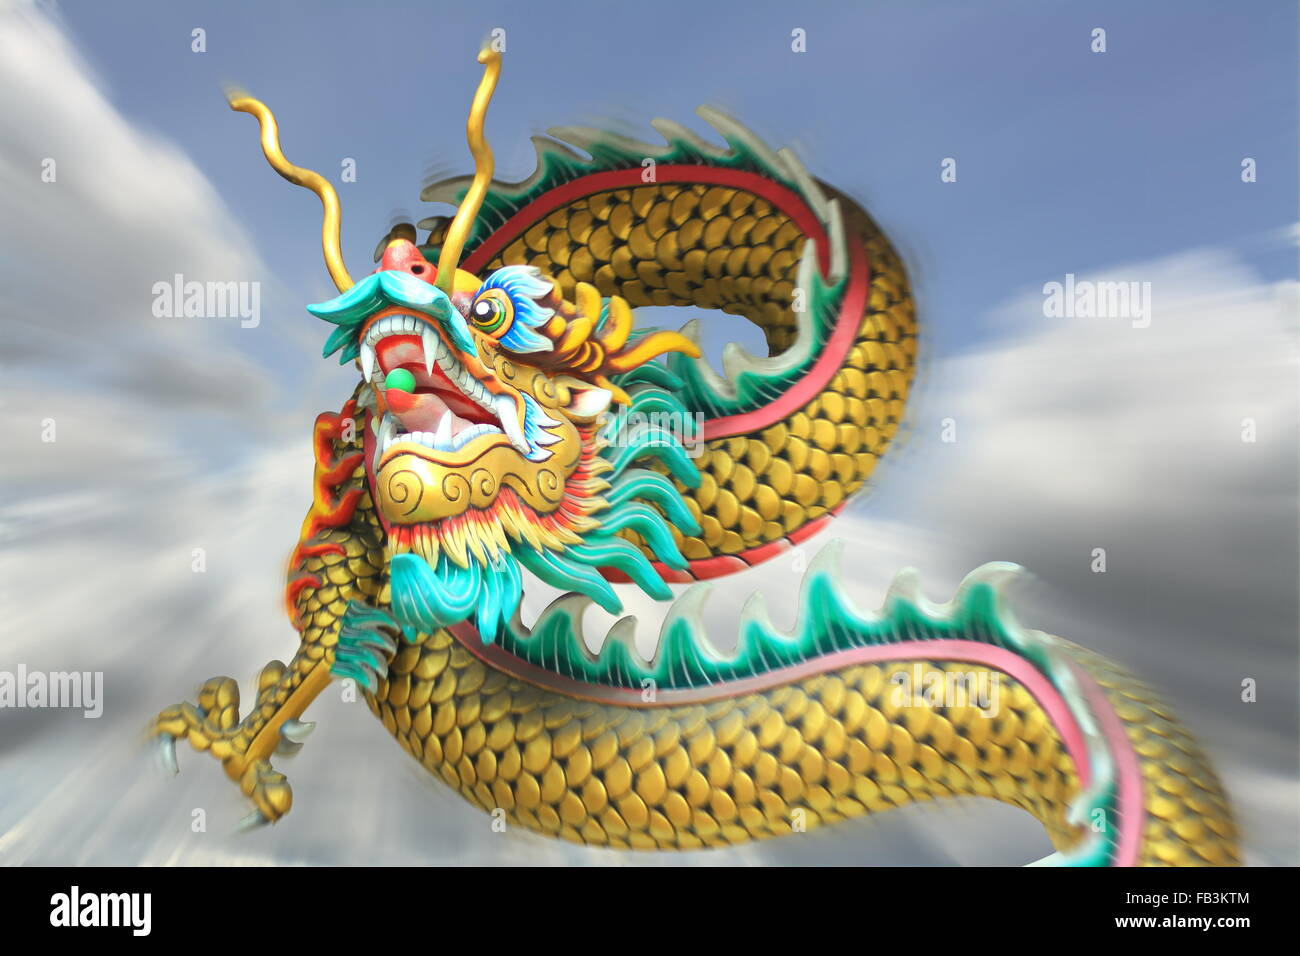 conceptual art : action zoom blurring effect of china dragon statue flying in the sky background - Stock Image